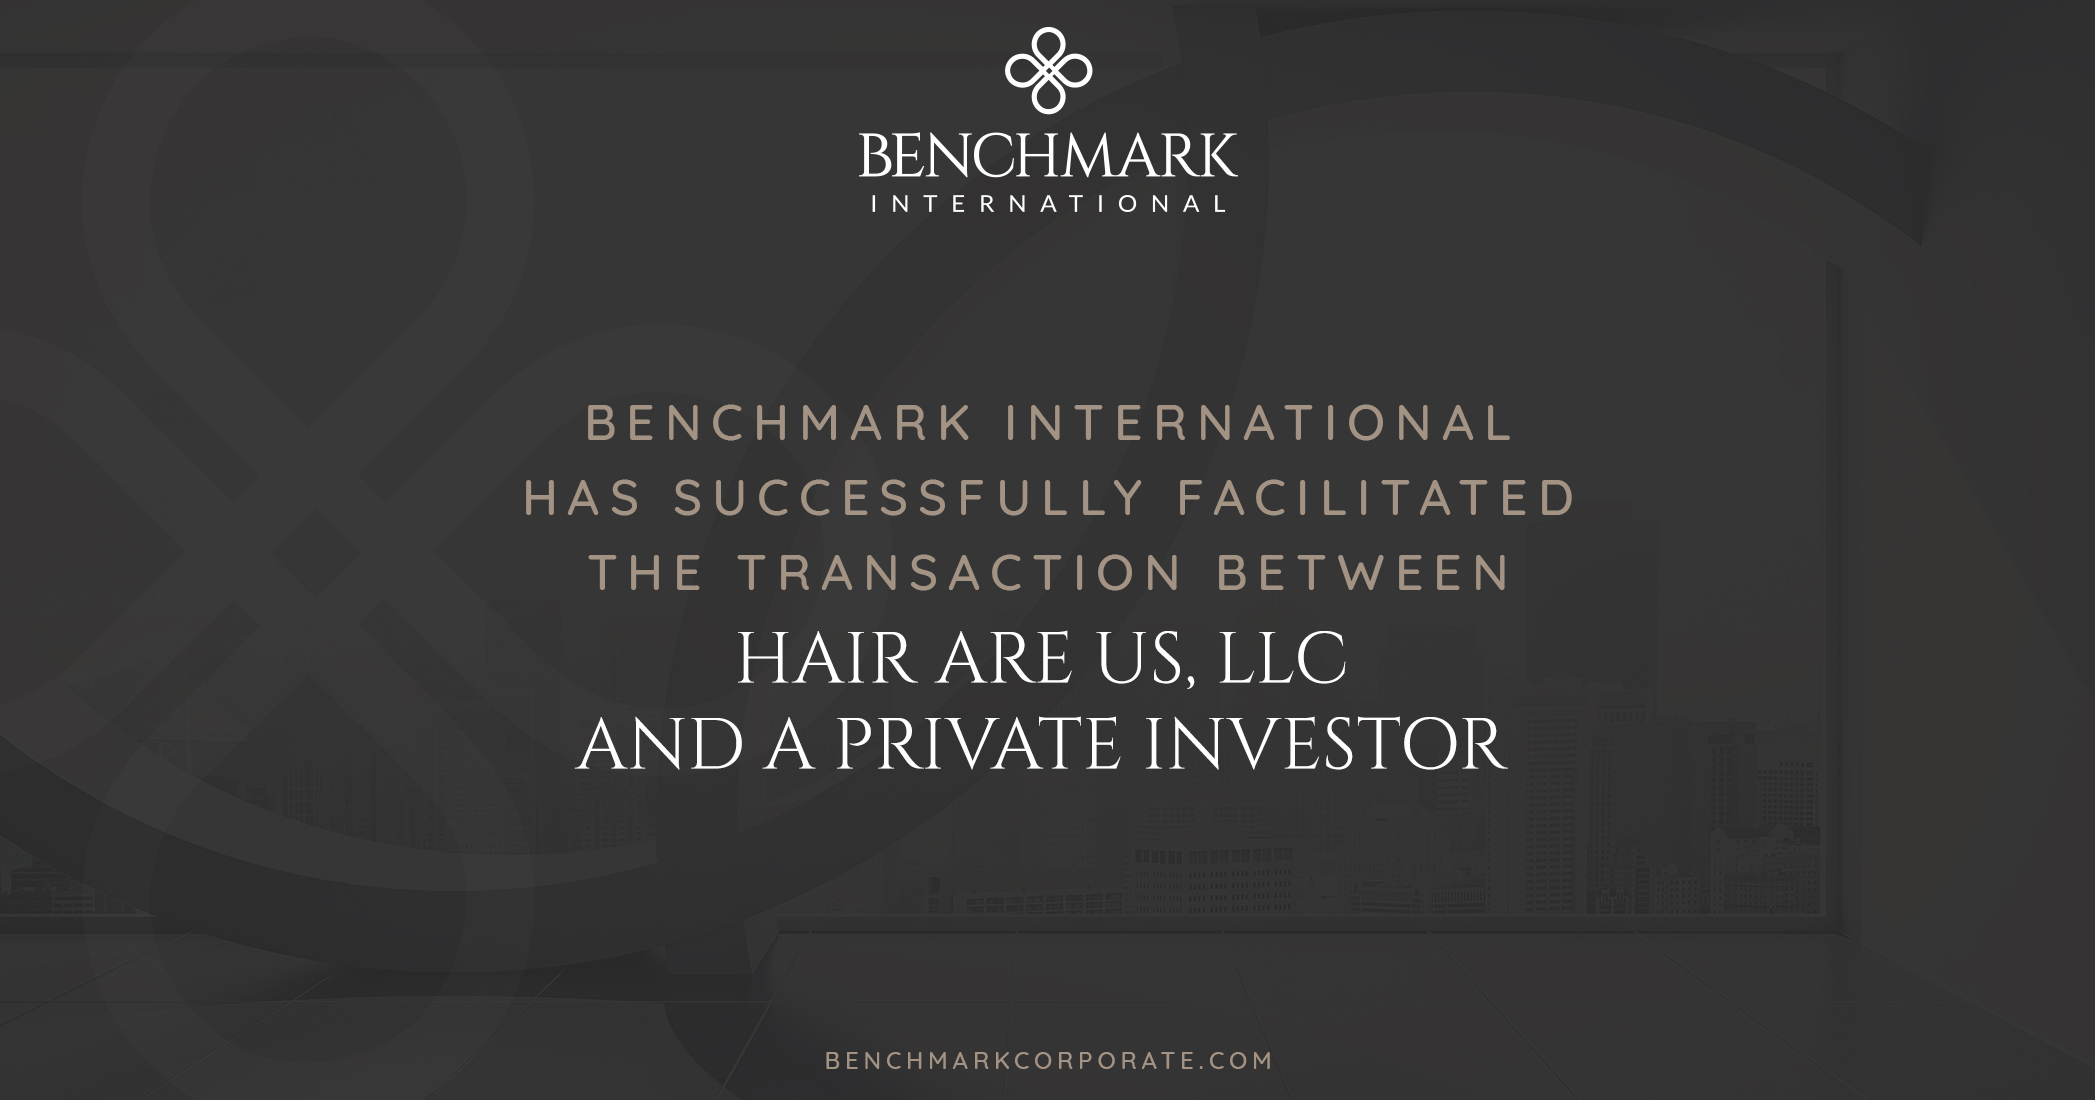 Benchmark International Successfully Facilitated the Transaction of Hair Are Us, LLC To a Private Investor